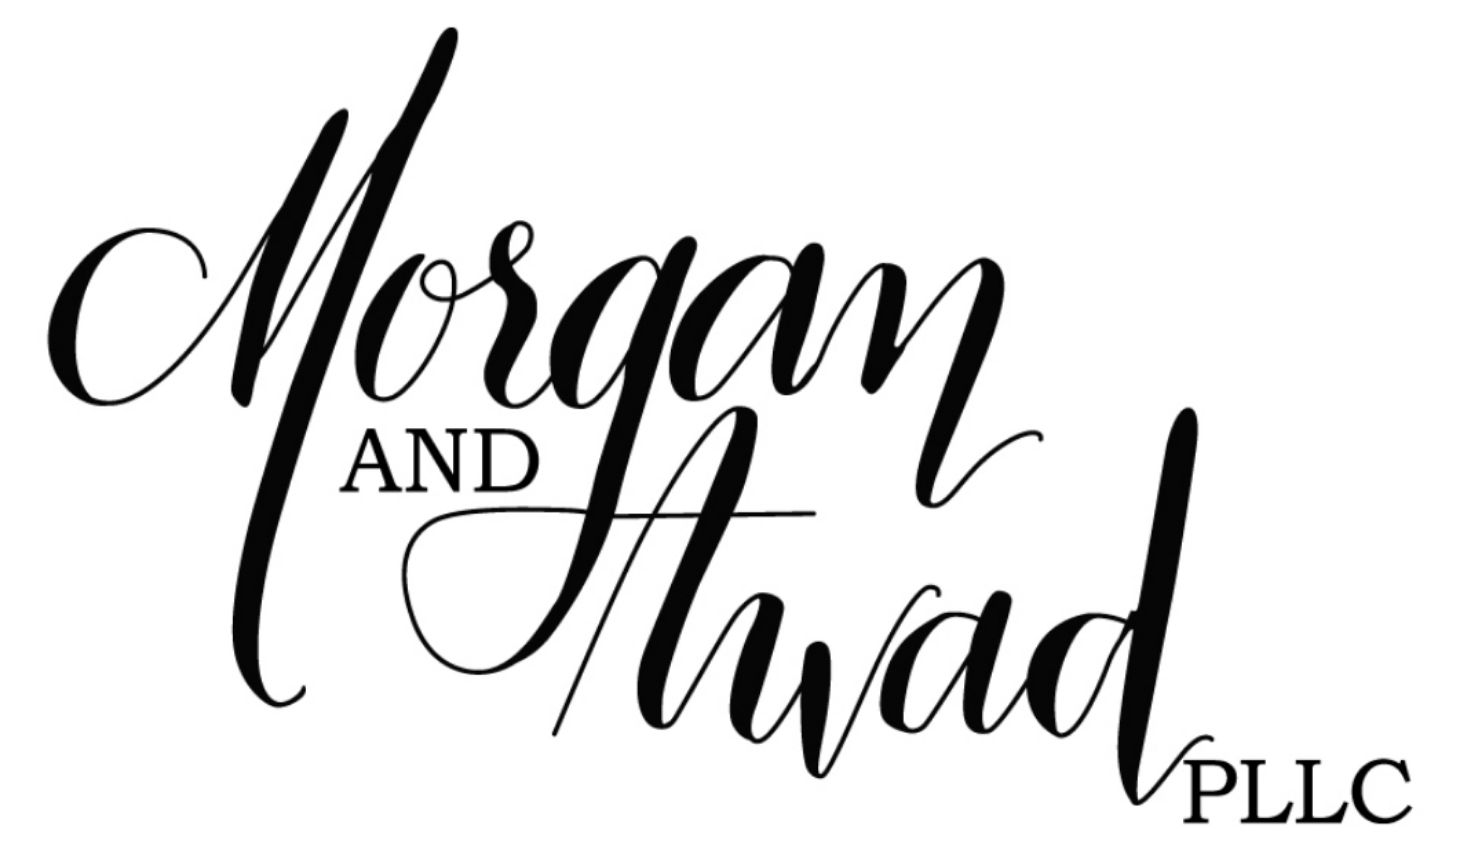 Morgan & Awad, PLLC